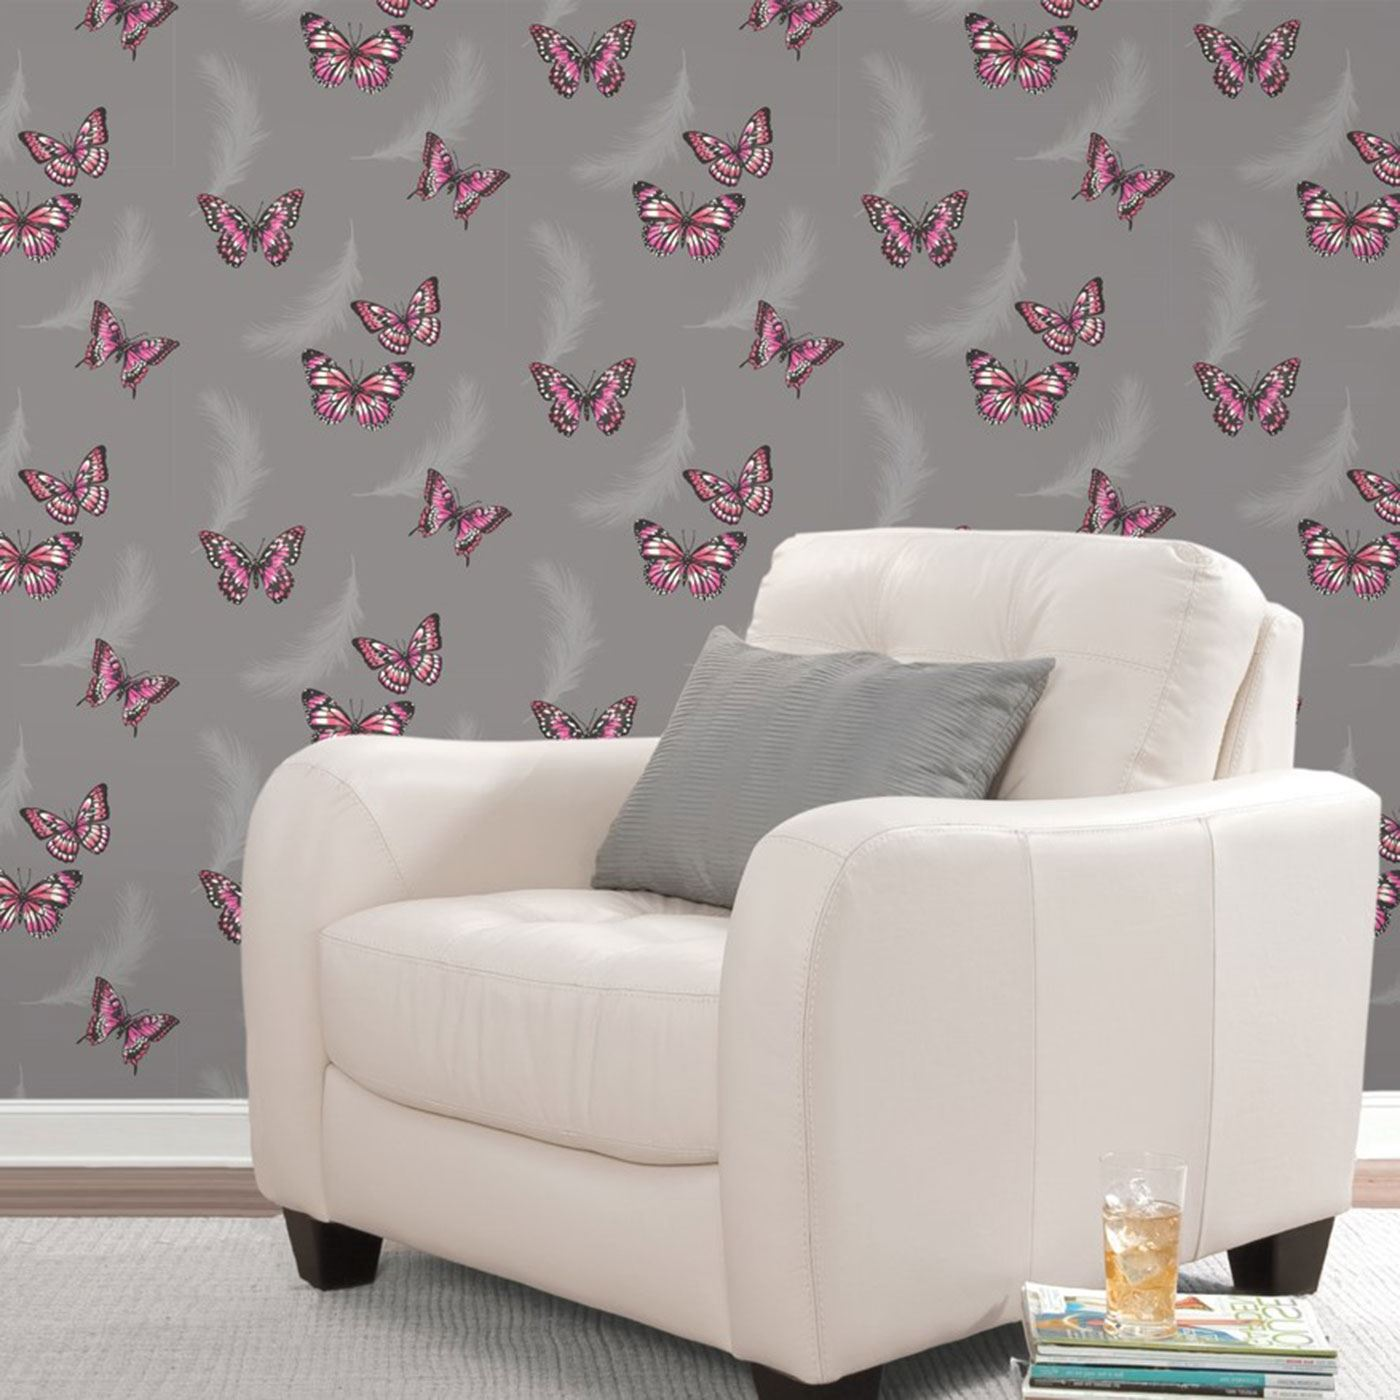 Bedroom Bed Photo Glitter Bedroom Accessories Pink Accent Wall Bedroom Bedroom Bench Decor: BUTTERFLY WALLPAPER GIRLS BEDROOM DECOR PINK WHITE TEAL